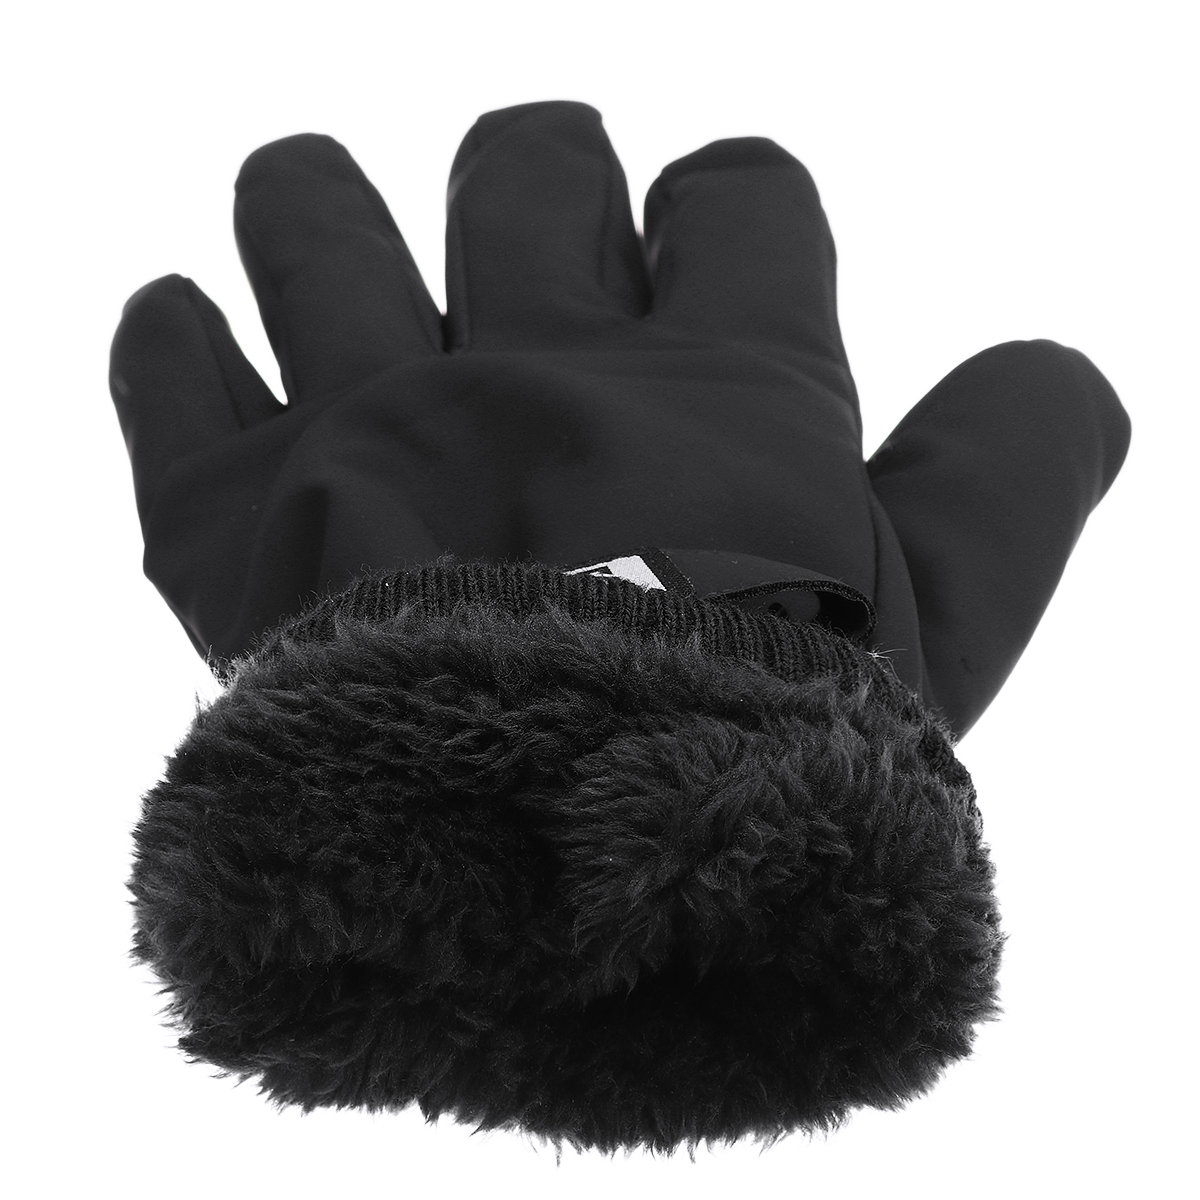 Men Winter Skiing Gloves Touch Screen Warm Sport Outdoor Snowboarding Windproof Thermal